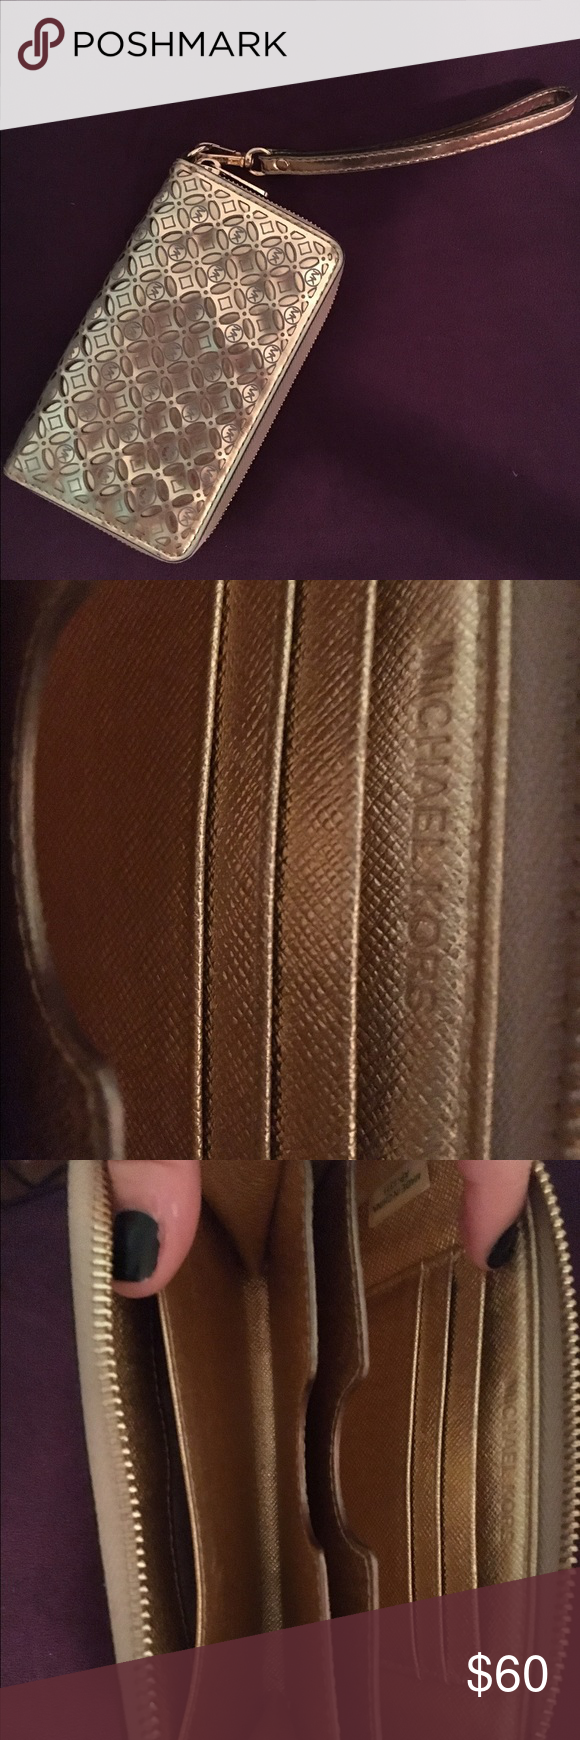 Michael Kors shiny gold wallet/wristlet! Authentic Michael Kors big wallet bought from Macy's in 2014. No stains or signs of wear. Super metallic and shiny. You can seriously fit so much stuff in here!! Michael Kors Bags Wallets